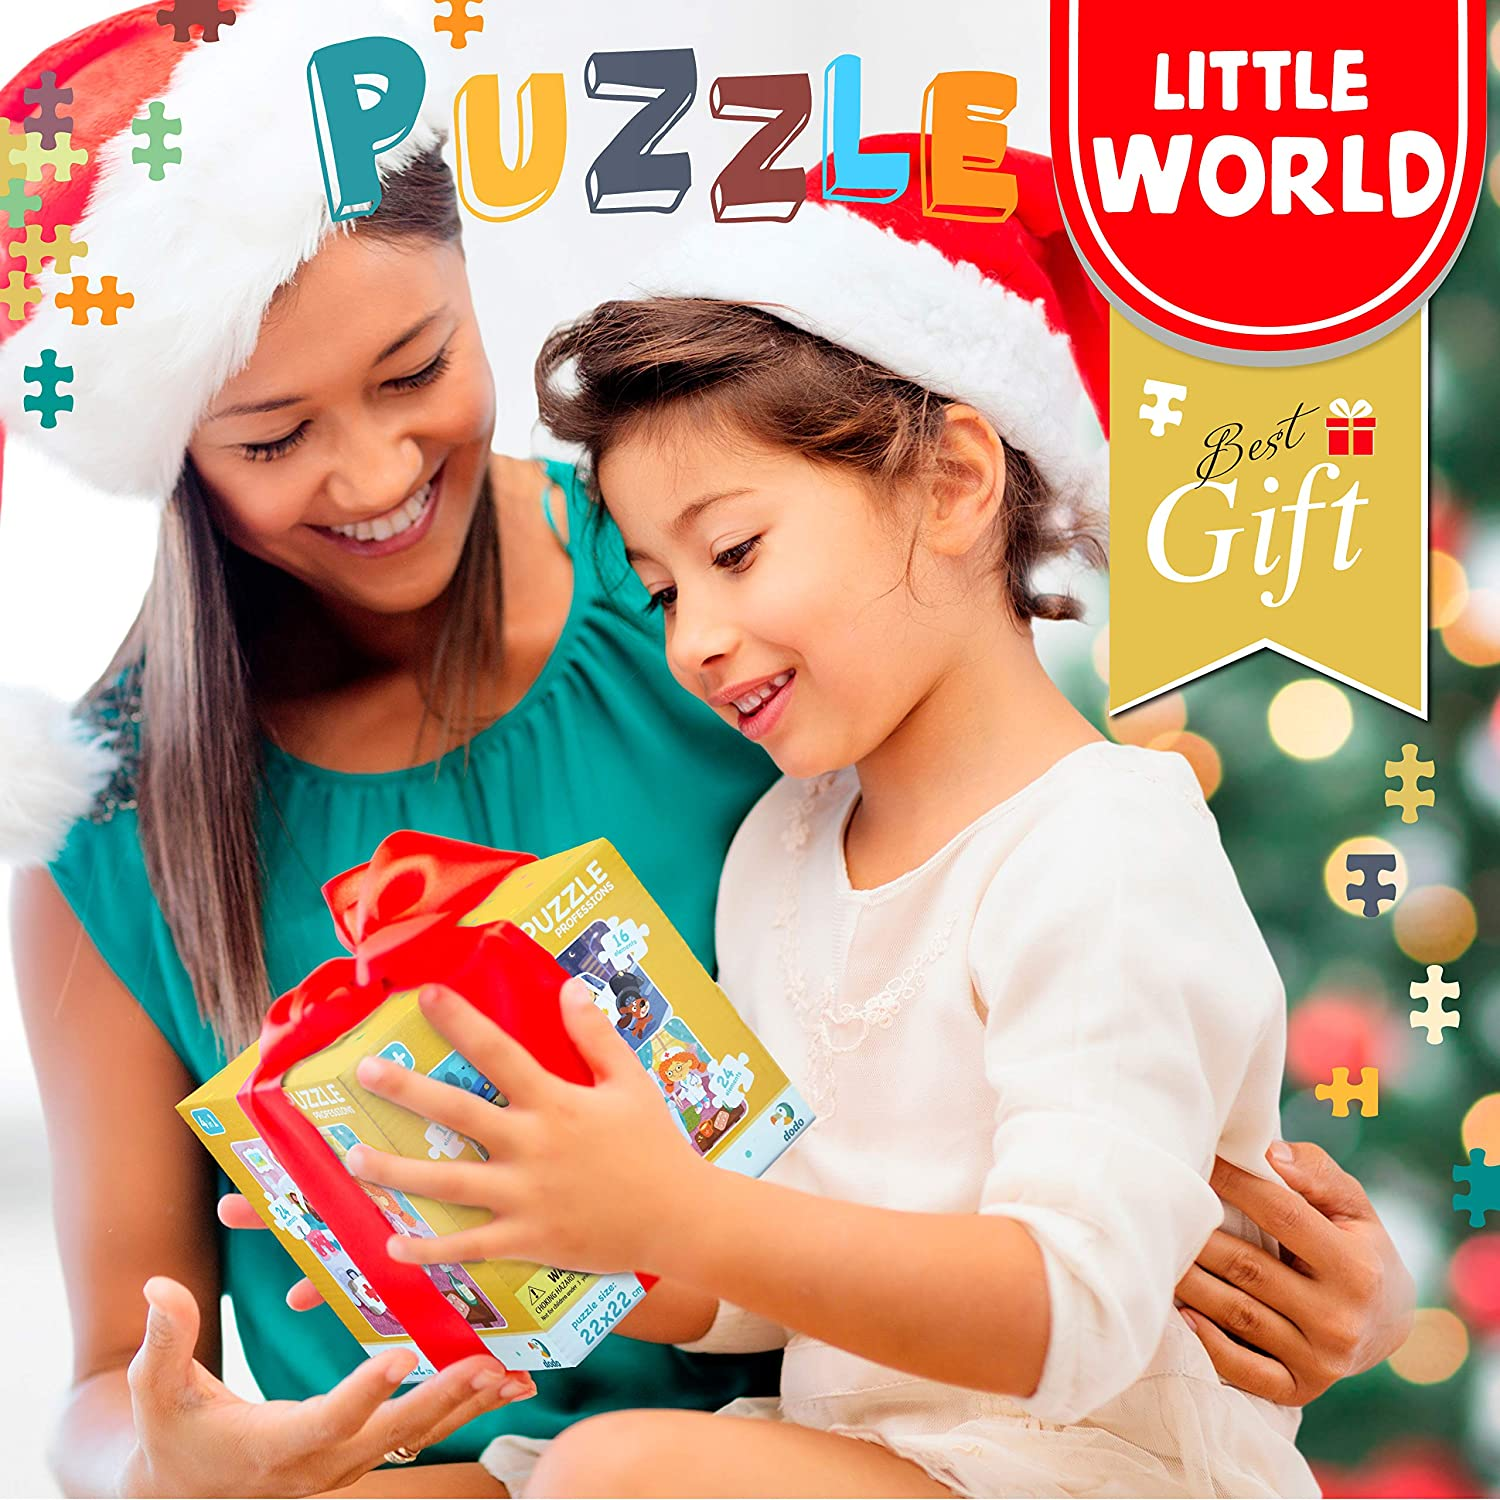 Educational Toddler Puzzles Cardboard Set of Floor Puzzles for Kids with 4 Increasing Difficulty Levels Beginner Puzzles for Children 3+ Little World 4 in 1 Jigsaw Puzzles for Kids Ages 3-5